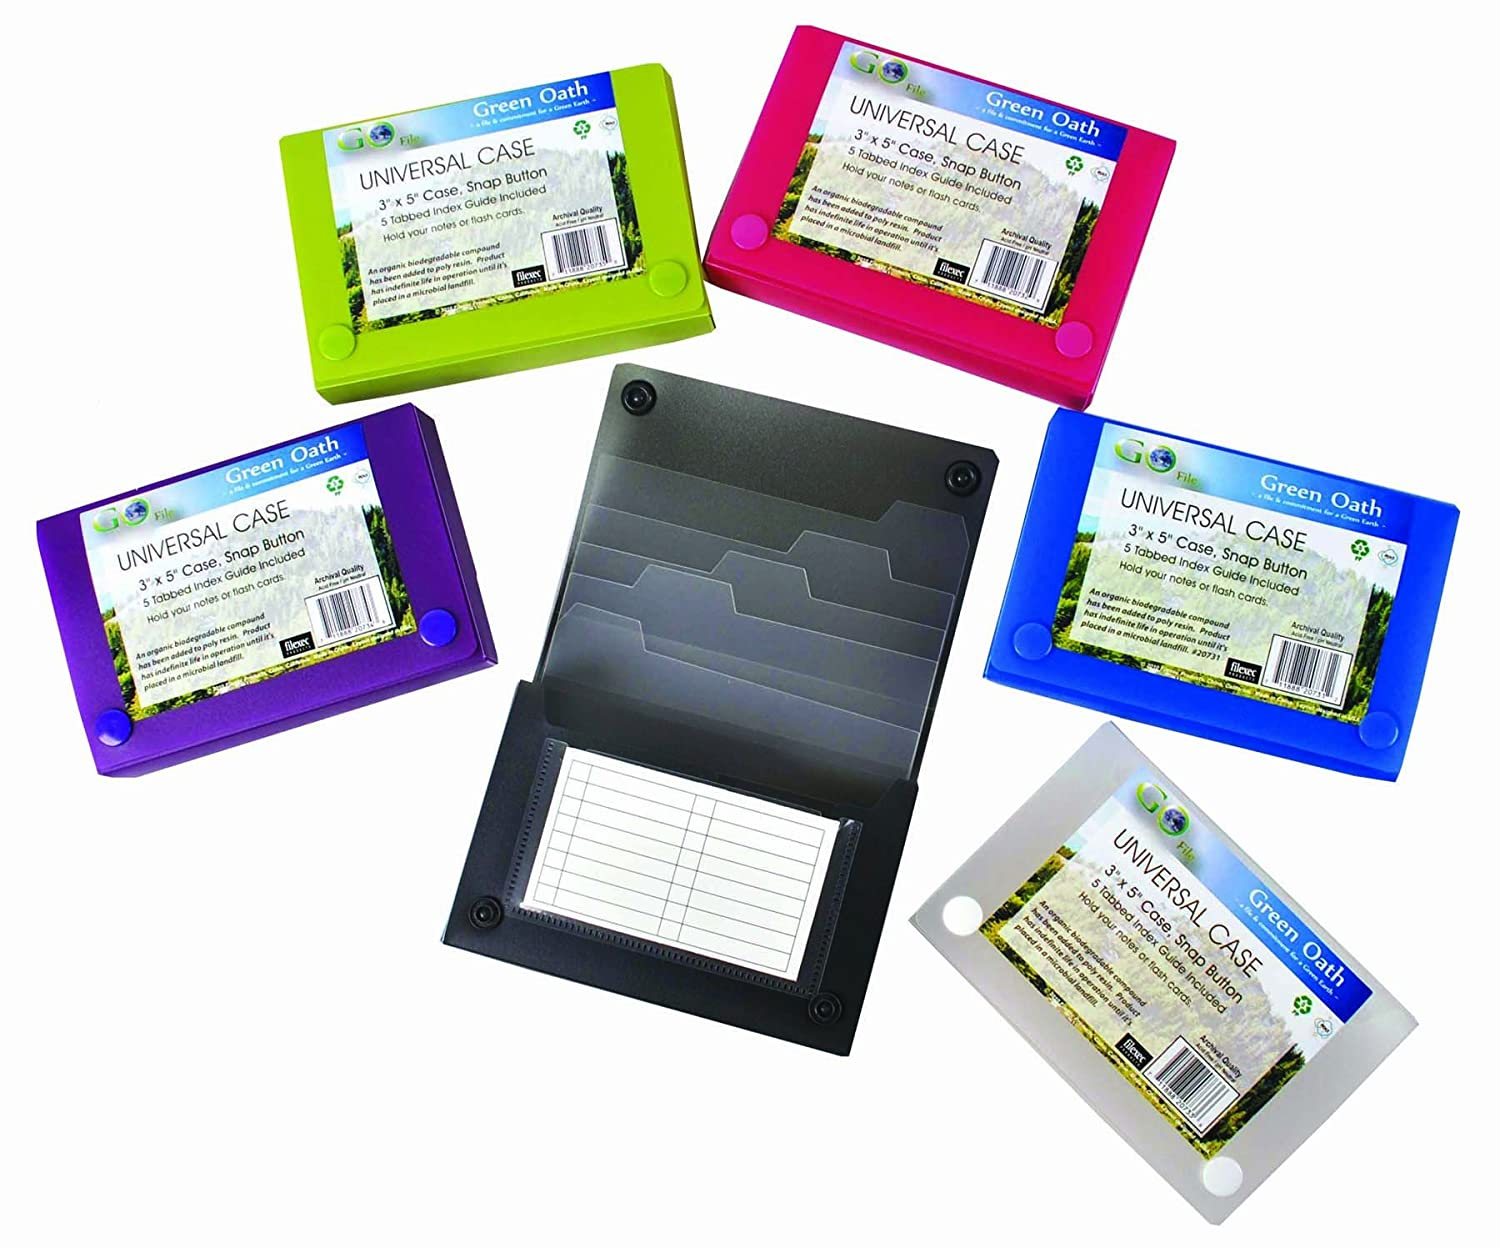 Green Oath 3 x 5 Inches Index Card Case, 5 Individual Index Dividers, Snap Button Closure, Set of 12 in 6 Assorted Colors, 2 Each of Blue, Hot Pink, Snow, Purple, Green, Graphite (50250-2073) Rim Pacific Inc.